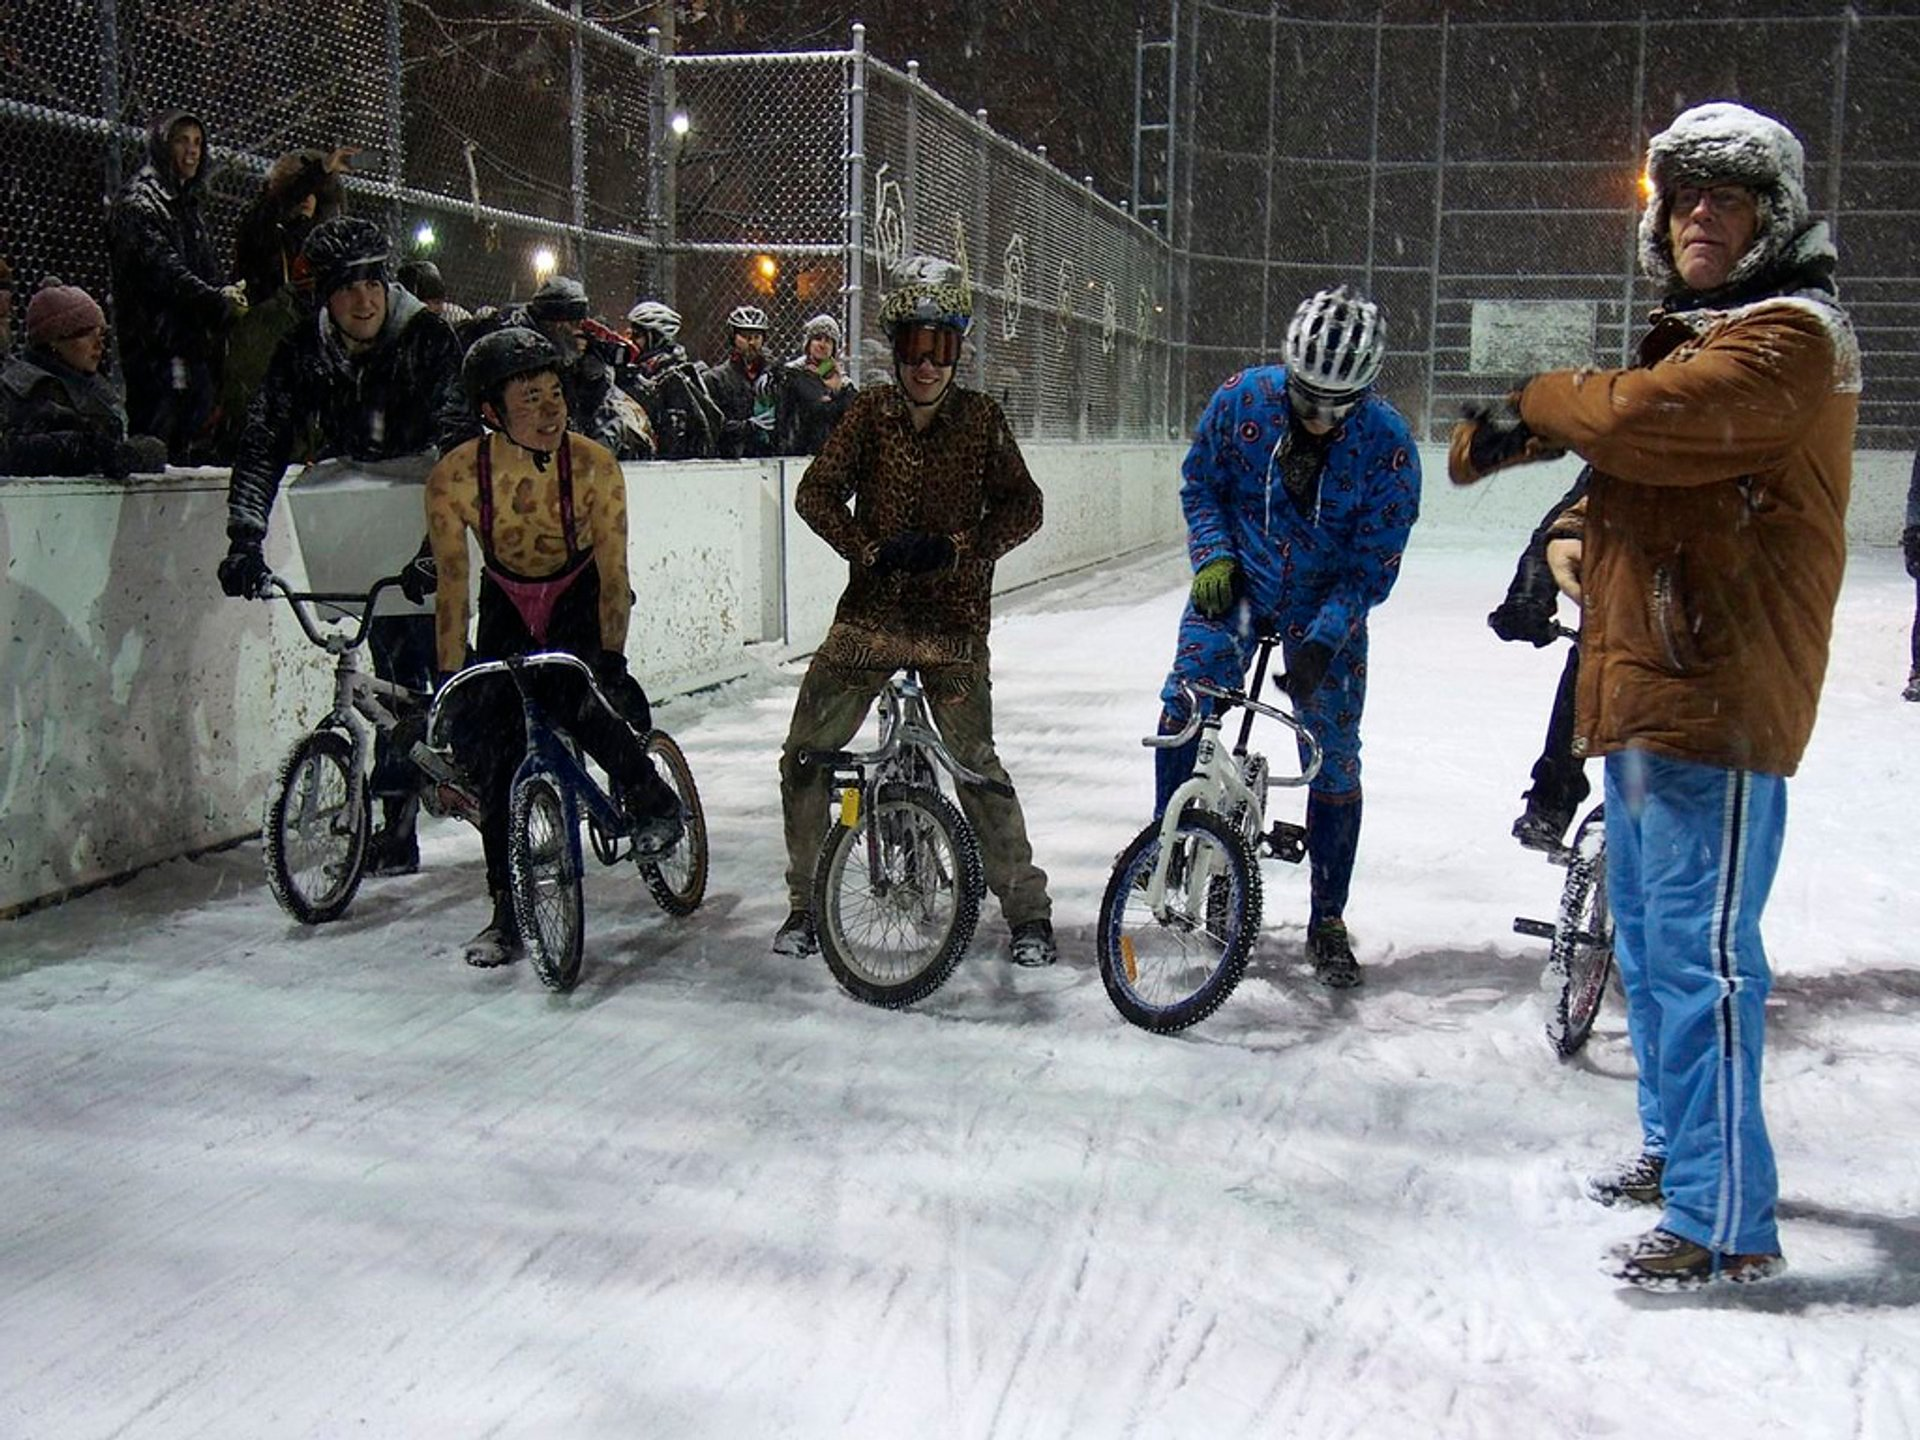 Icycle Race in Toronto 2020 - Best Time